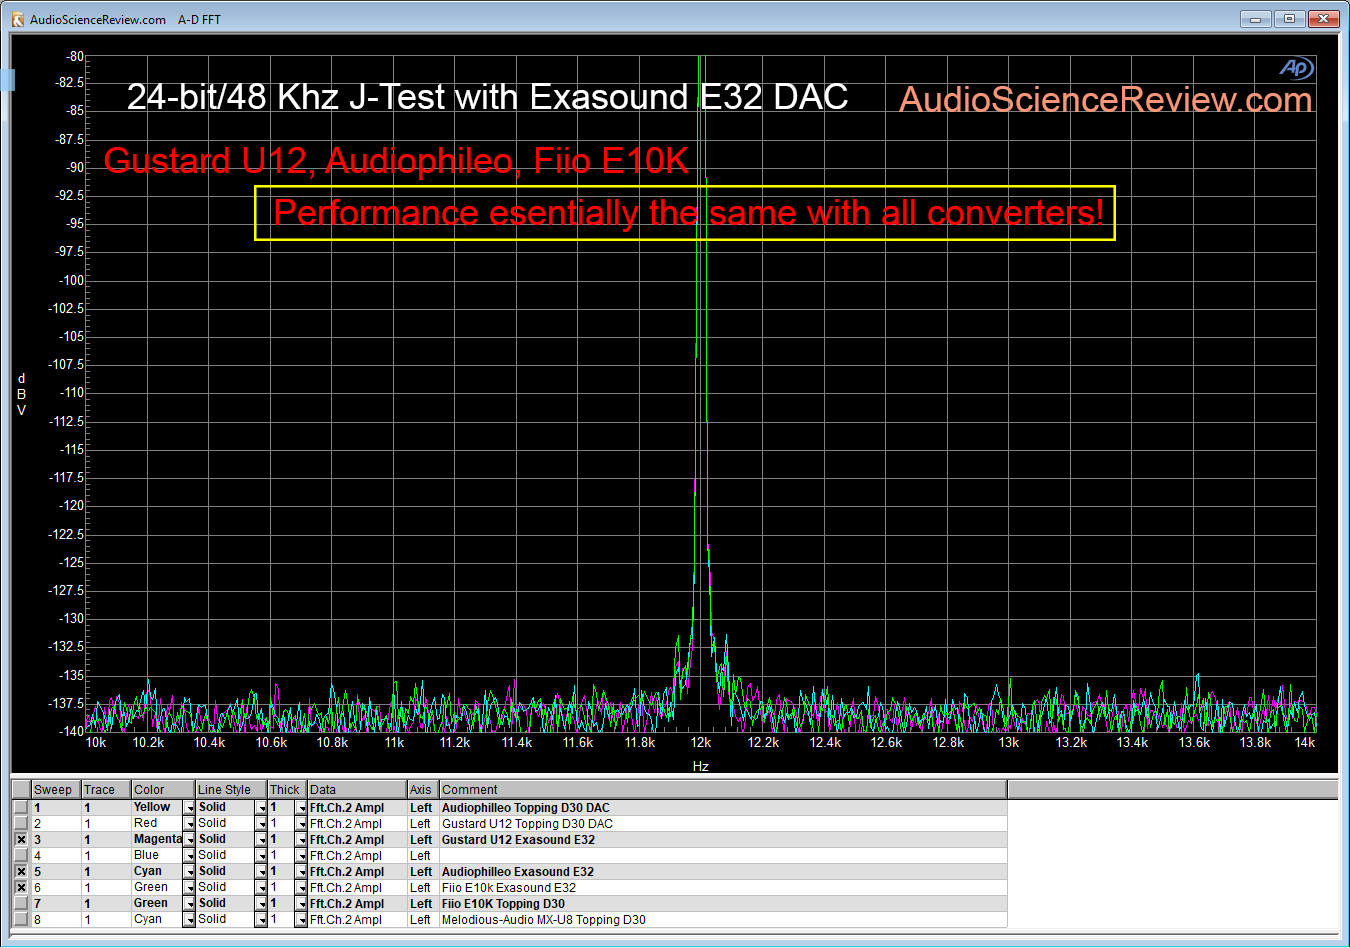 Gustard U12 J-Test vs Audiophilleo Fiio E10K using Exasound E32 DAC.png